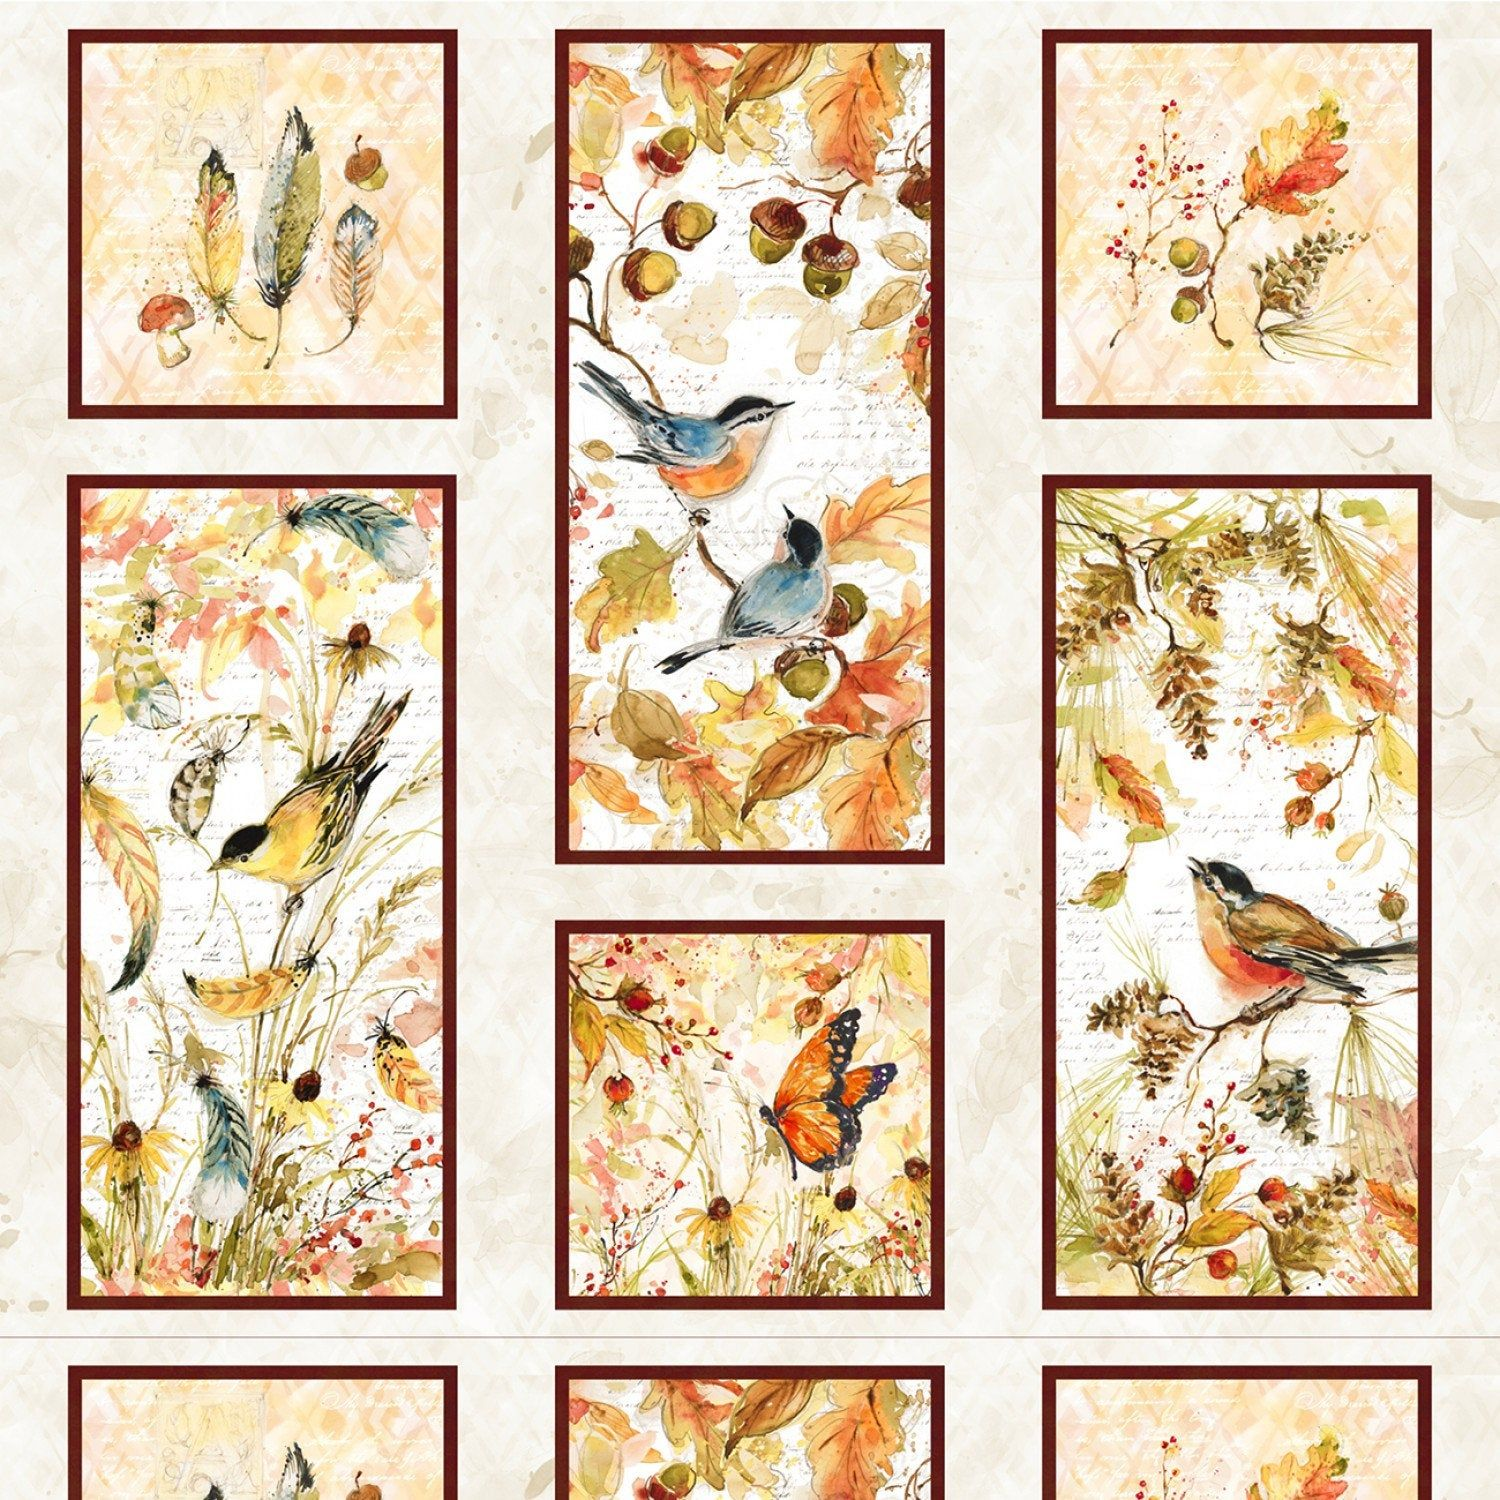 Fall Colors Leaves /& Wreath Panel by Wilmington Prints-Leaves-Wreath-Fall